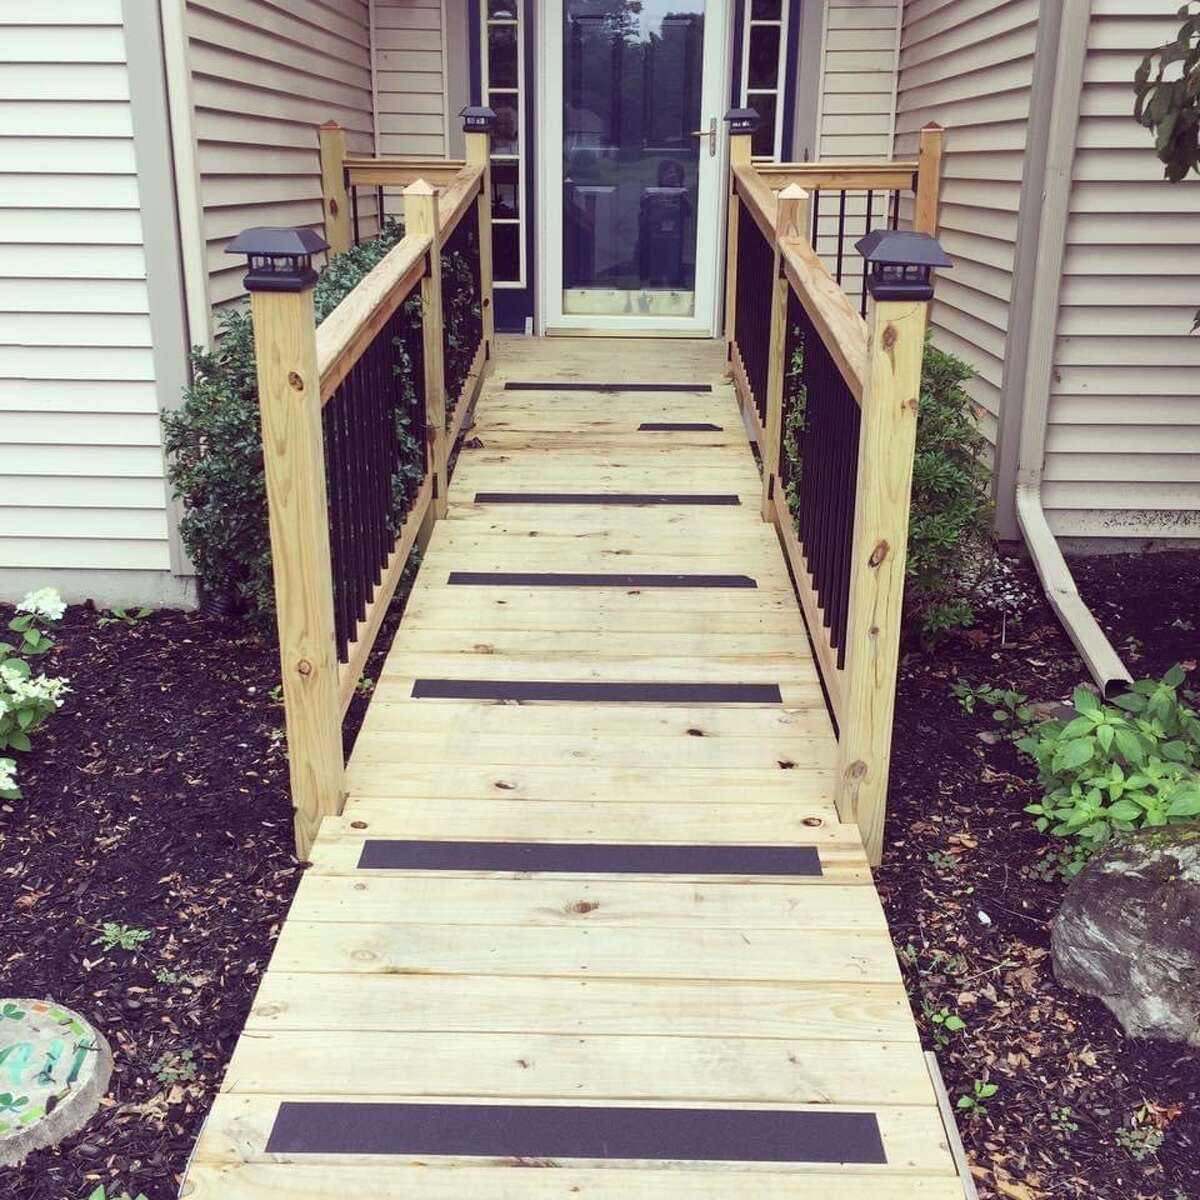 An example of a perfect ramp with lights, rubber treads to prevent slipping and correct grade so it's not too steep.